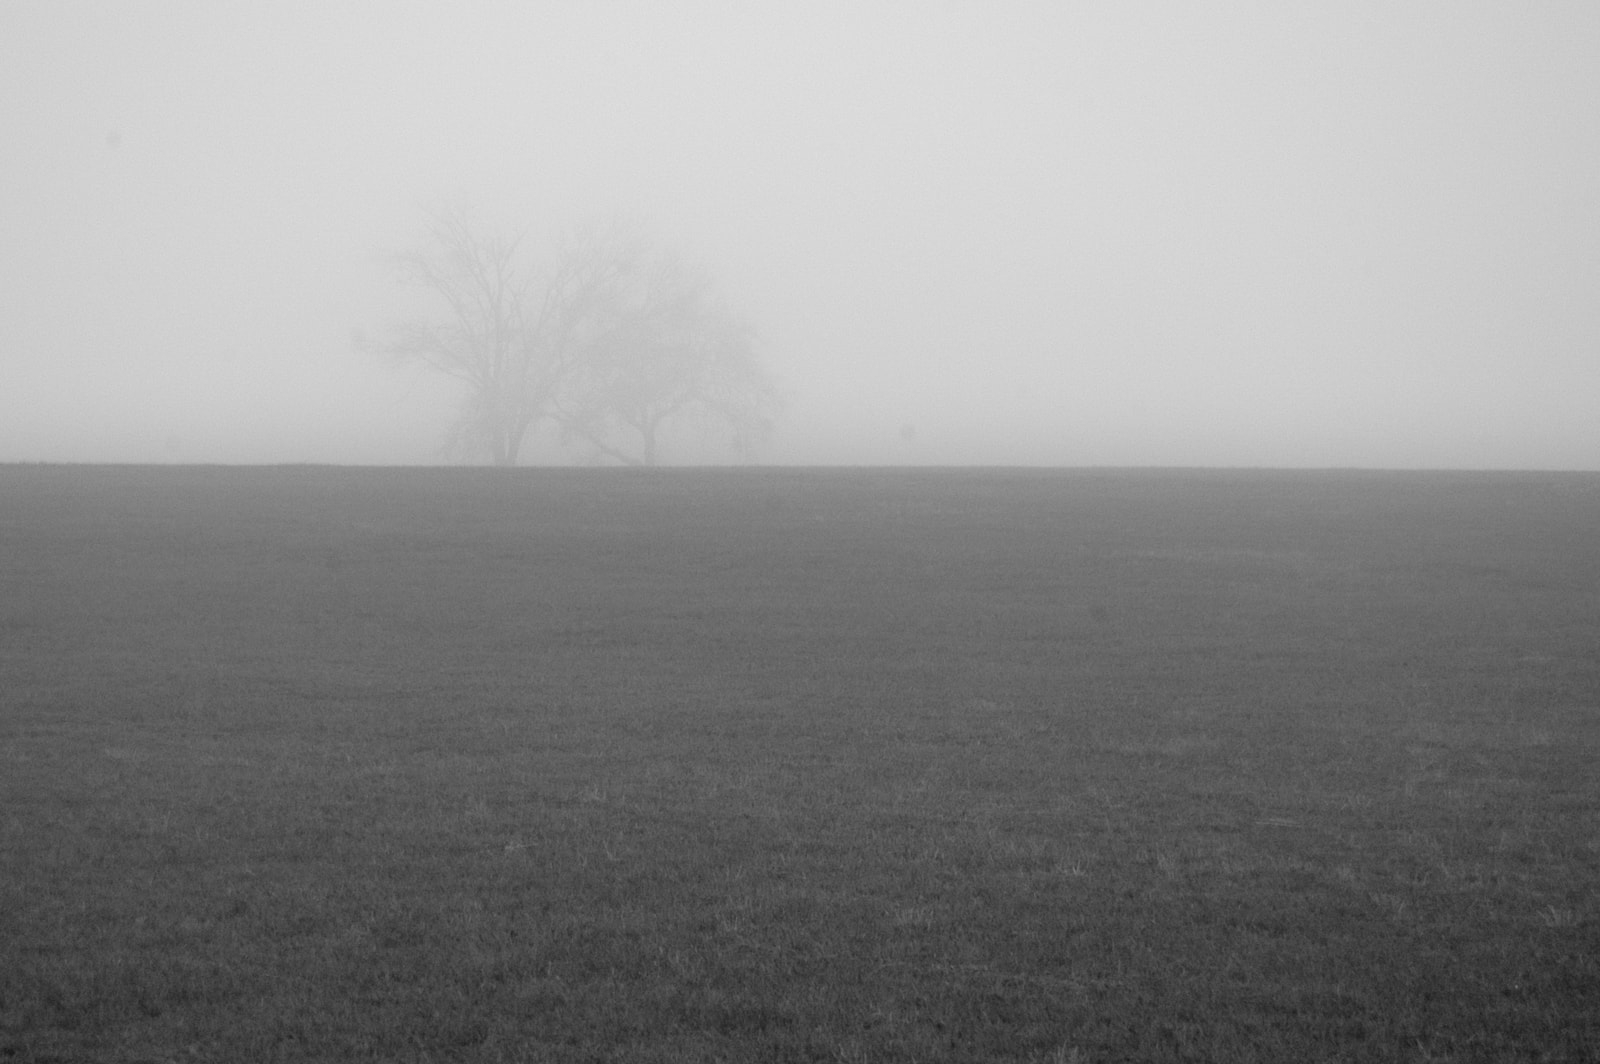 A pasture with trees in the distance covered with fog